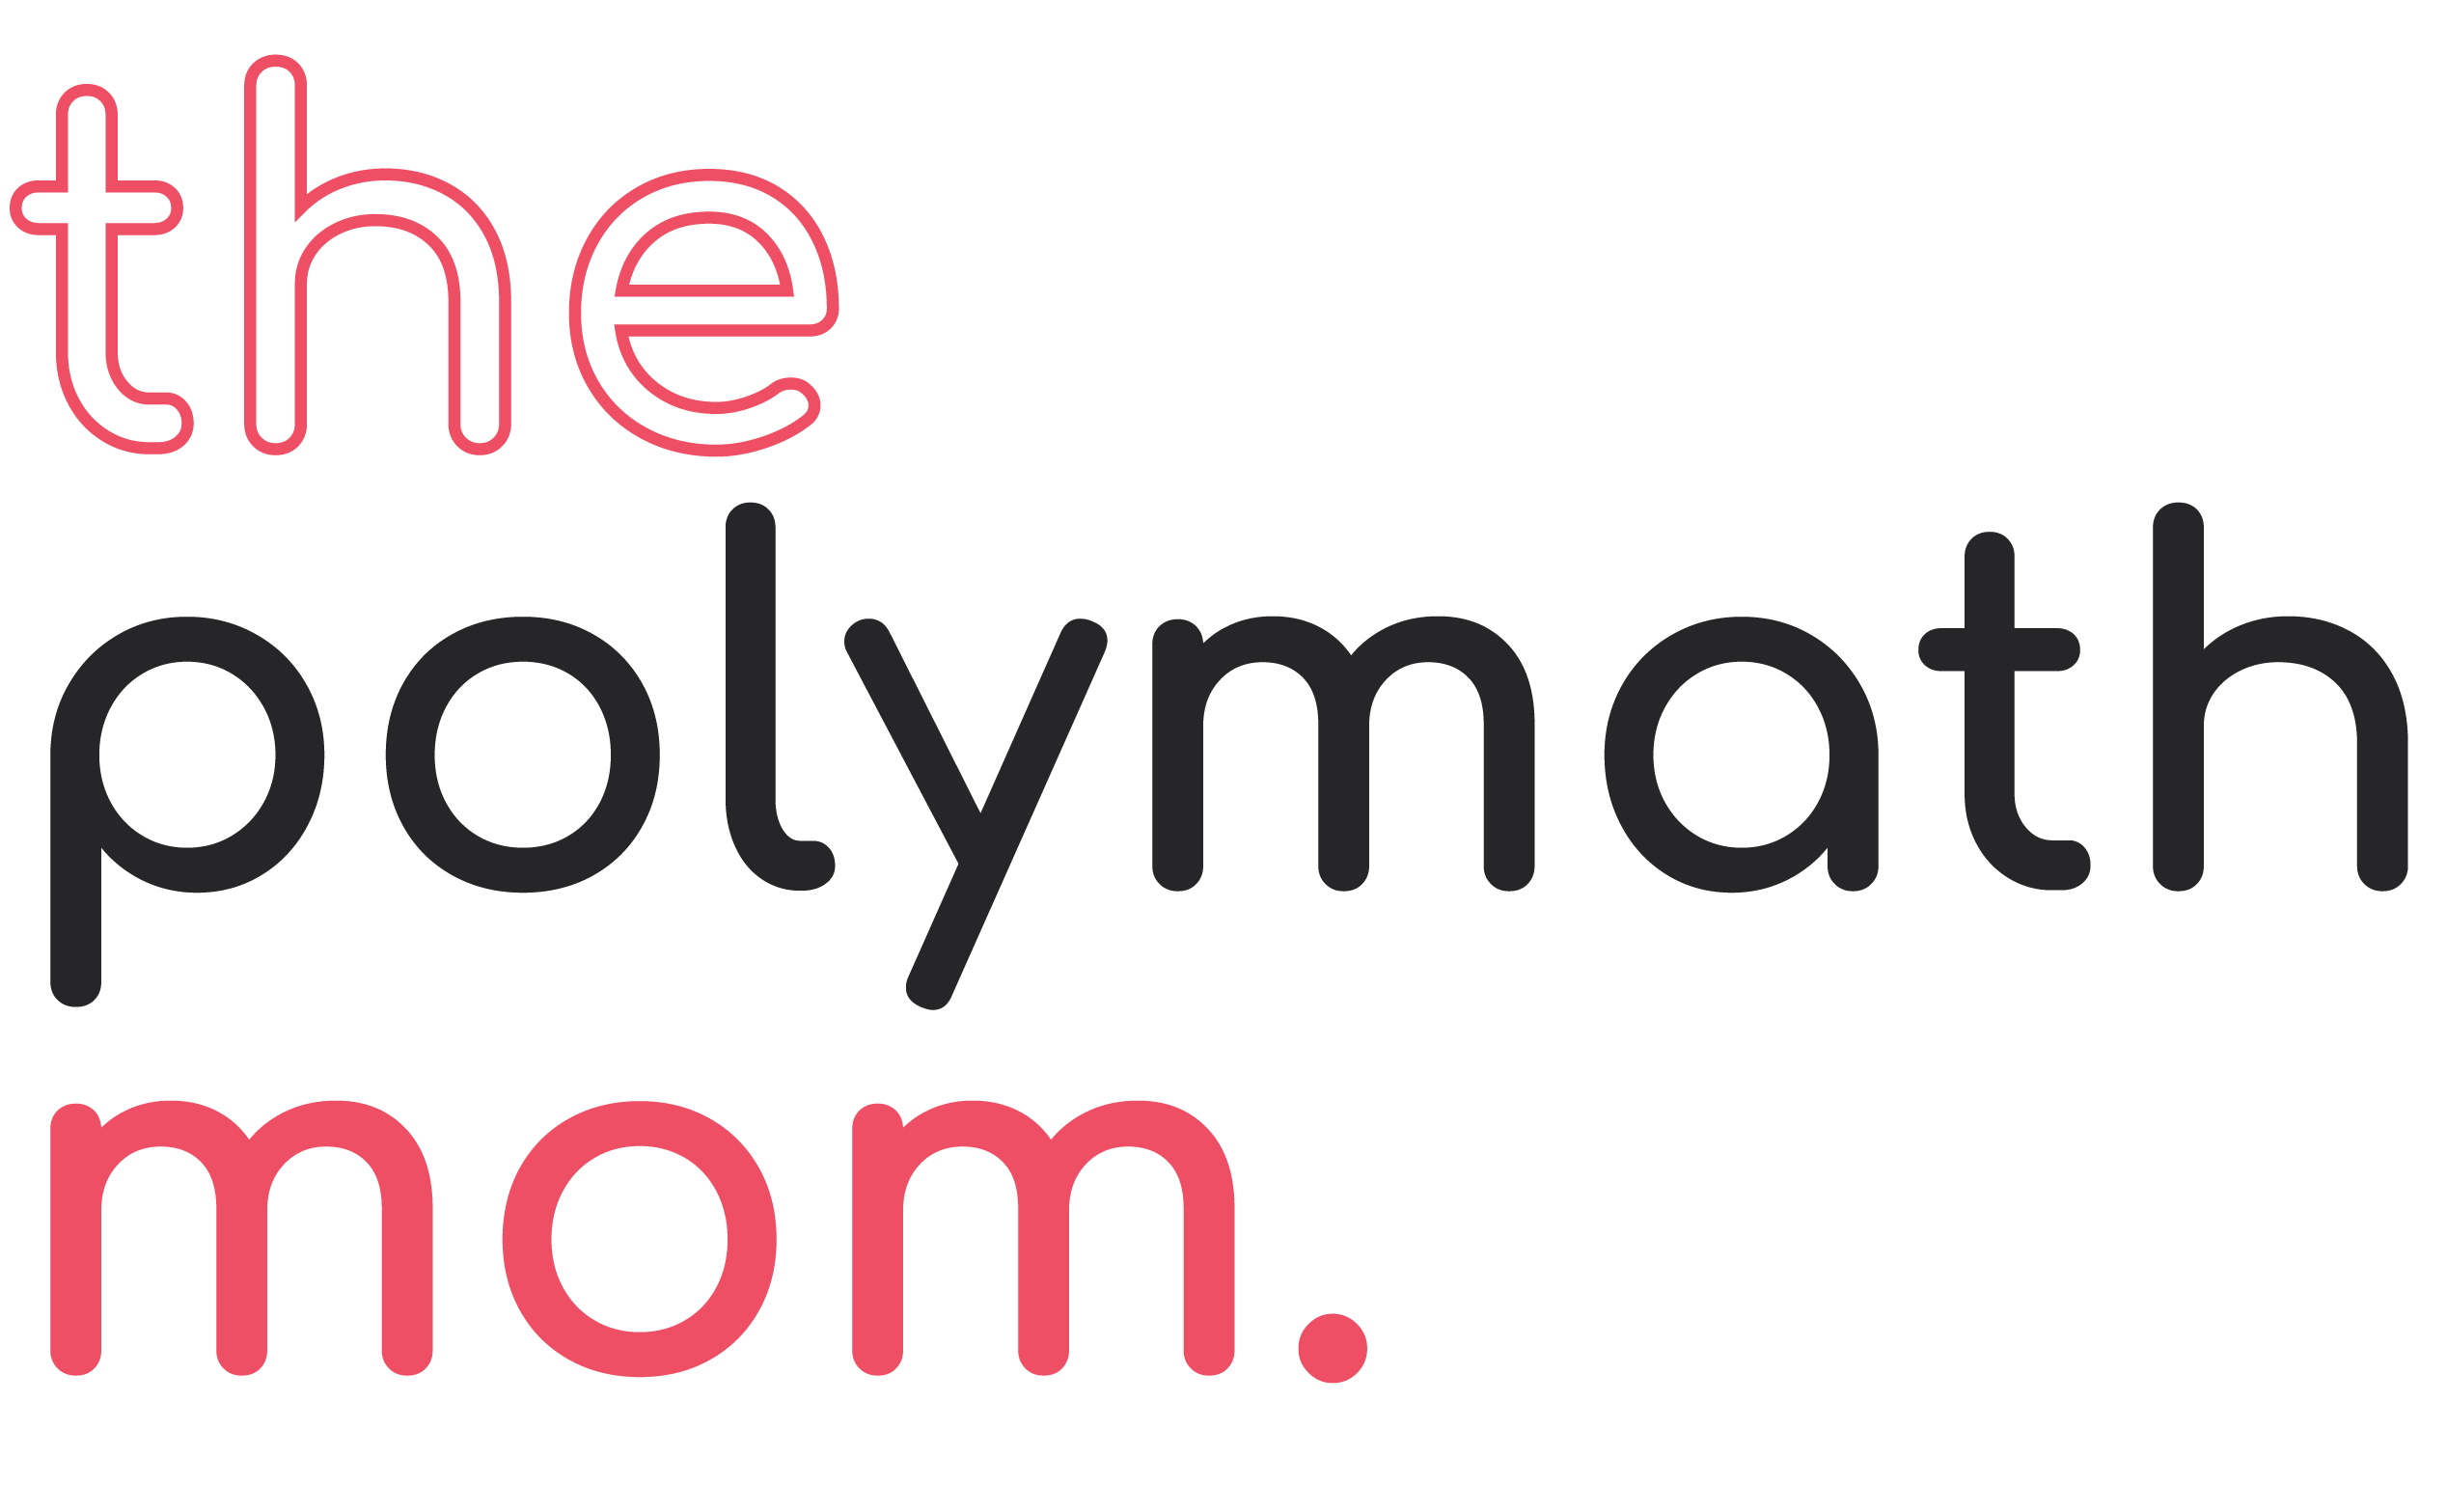 The Polymath Mom Previewer